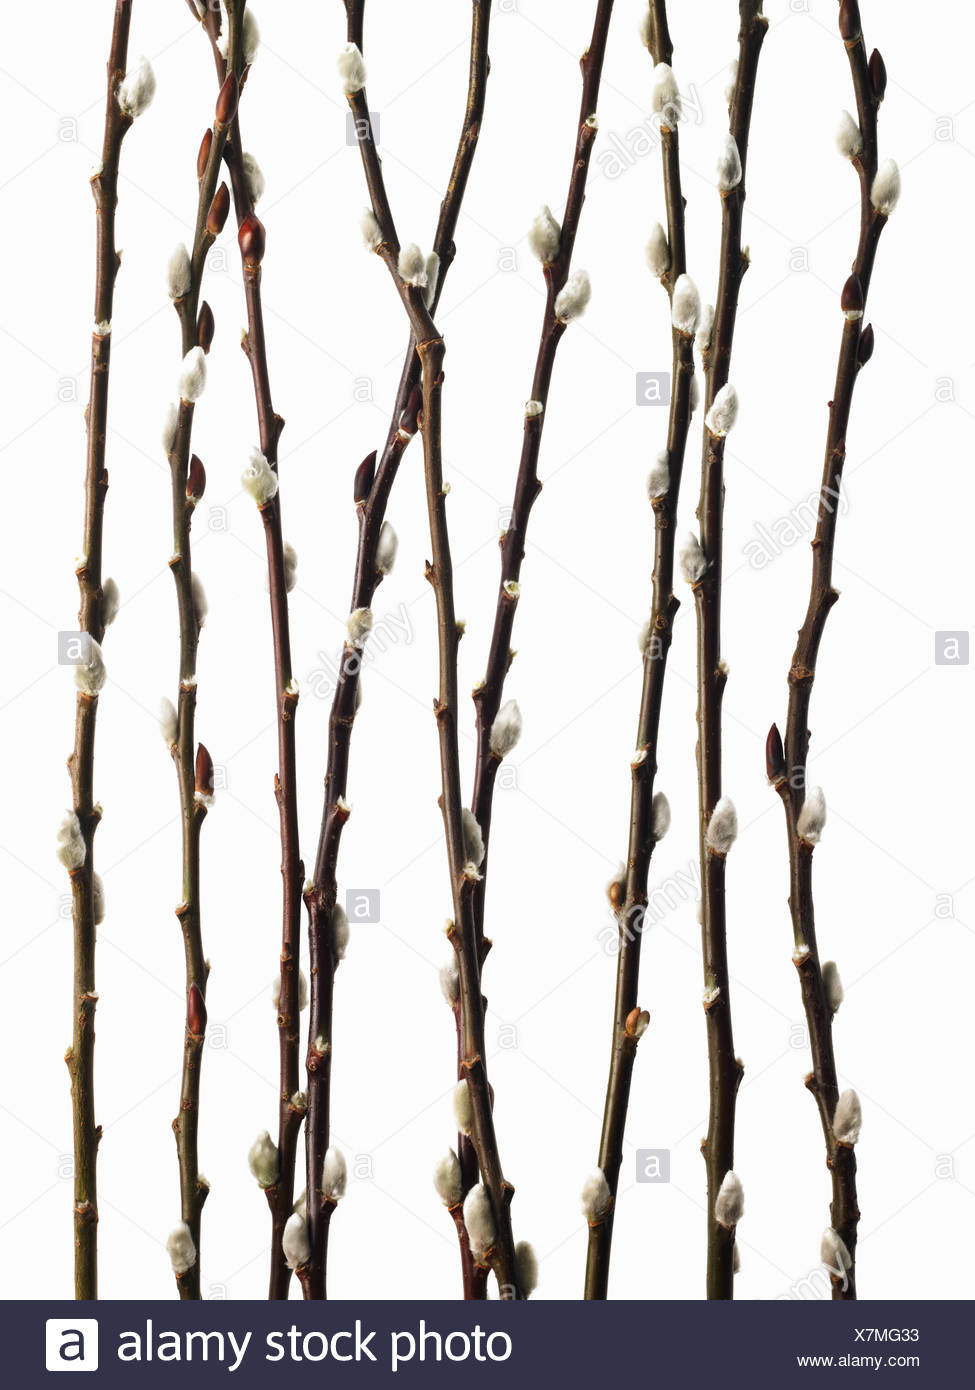 Twigs budding flowering shrubs Salix pussywillow - Stock Image